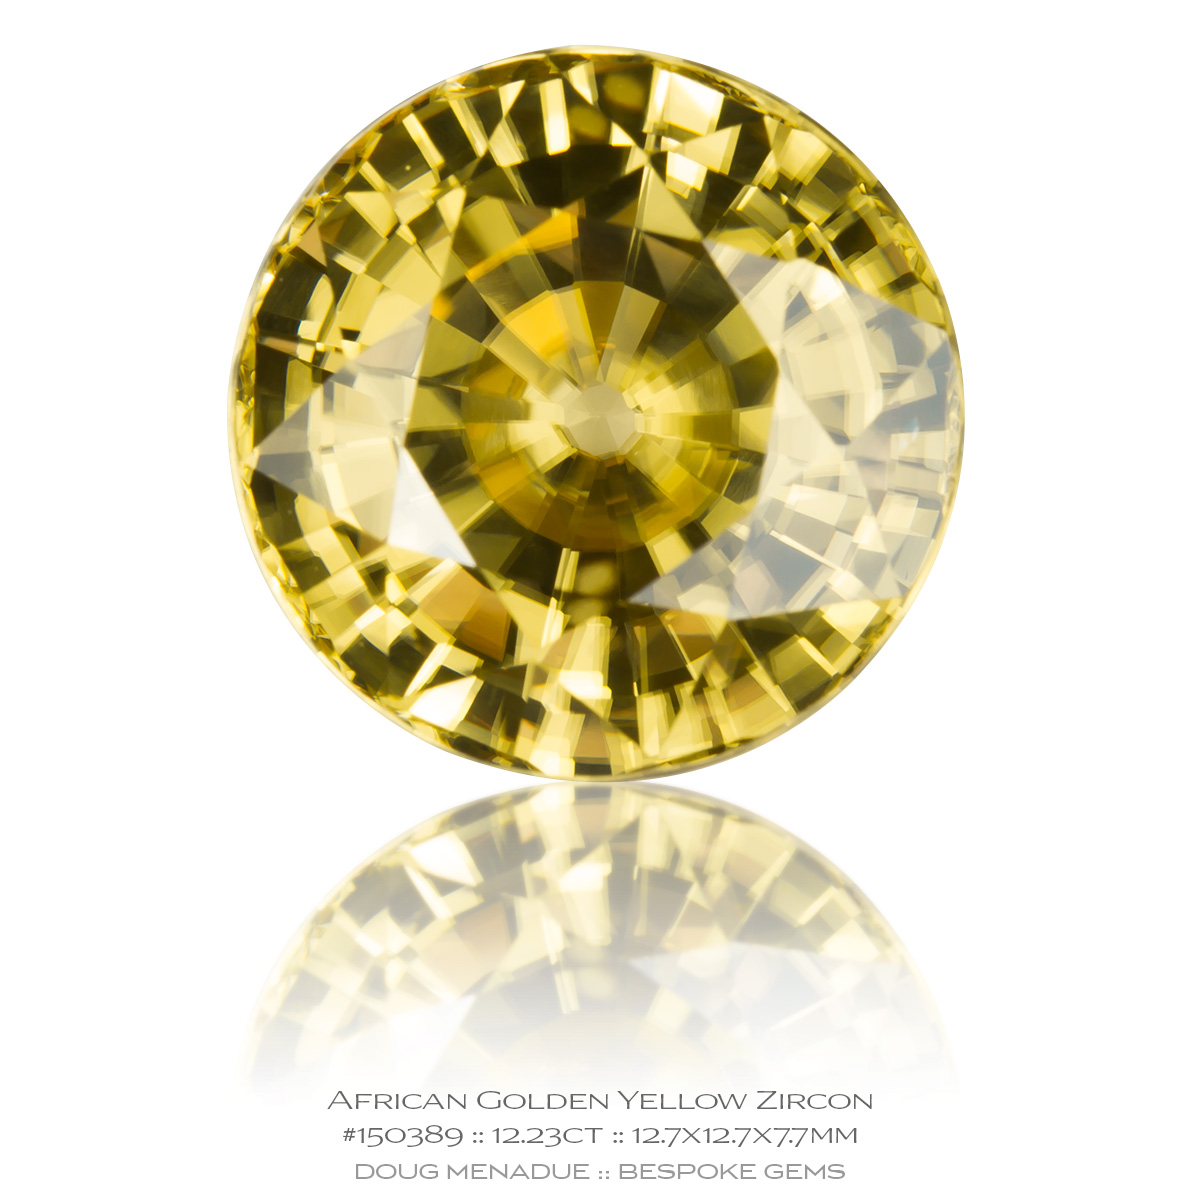 #150389, Golden Yellow Zircon, Round, 12.23 Carats, 13.16X13.11X10.41mm - Doug Menadue :: Bespoke Gems - WWW.BESPOKE-GEMS.COM - Precision Gemcutting and Lapidary Services In Sydney Australia